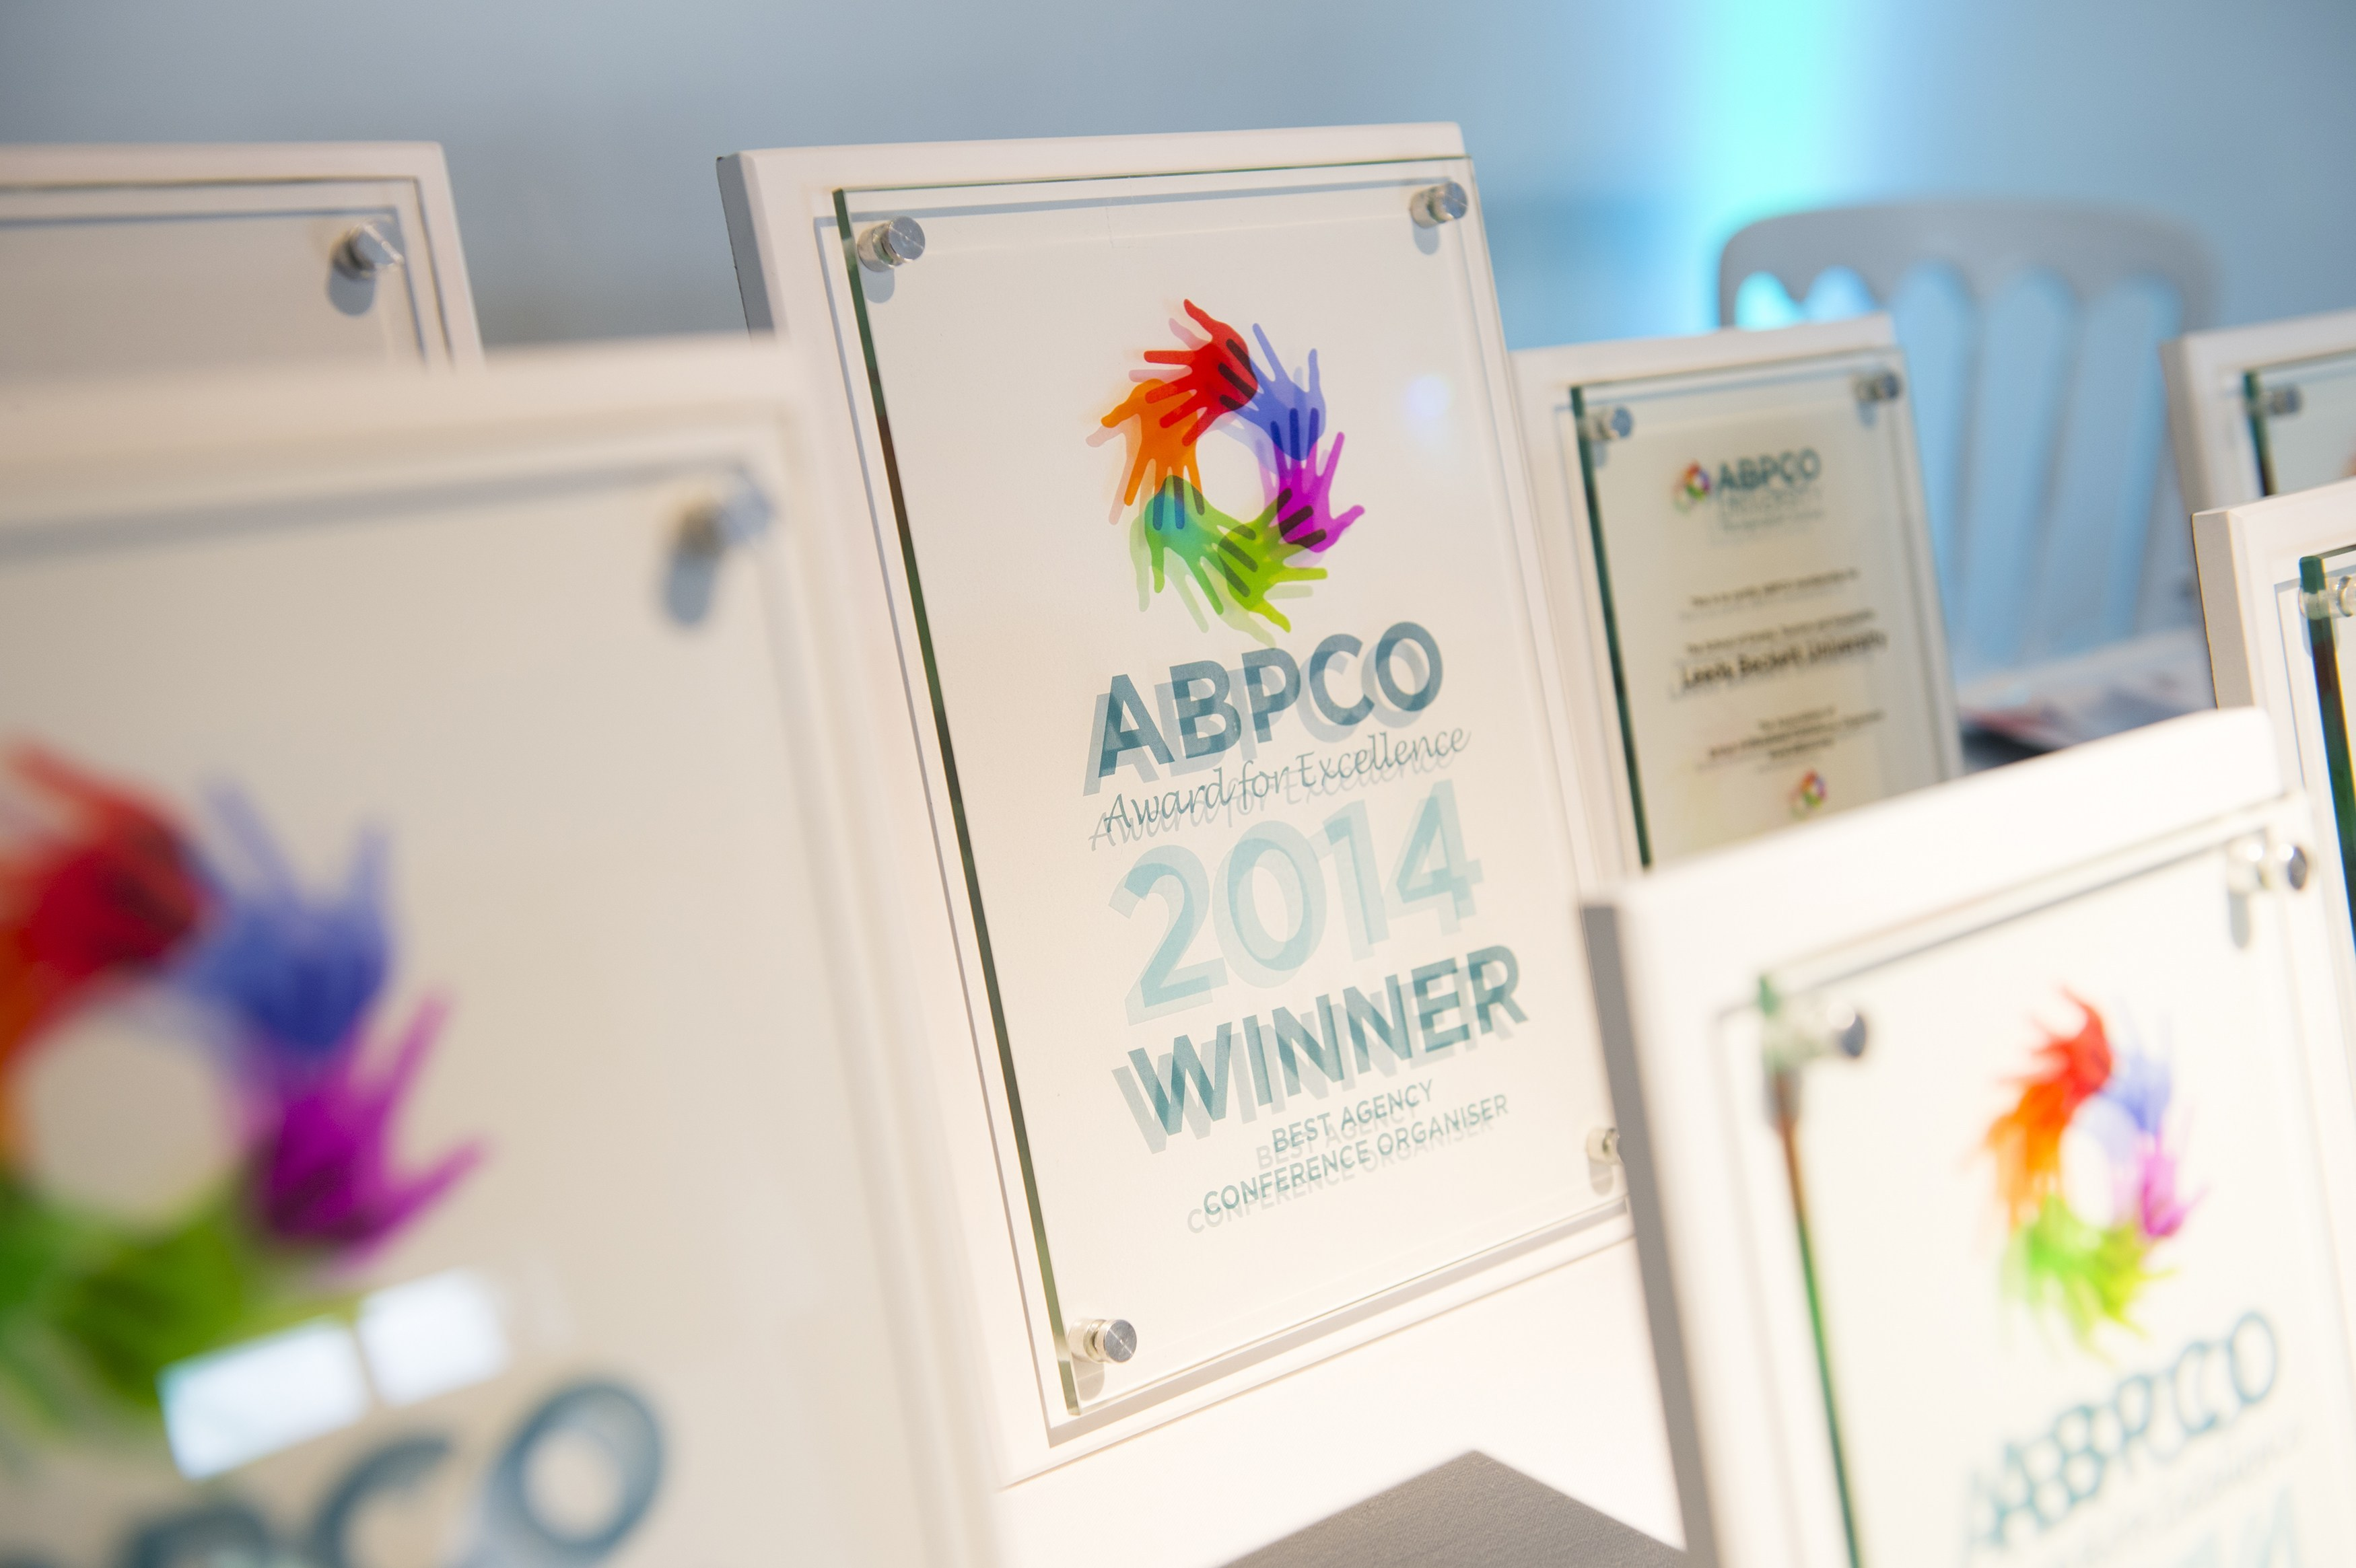 Shortlist revealed for ABPCO Excellence Awards header internal